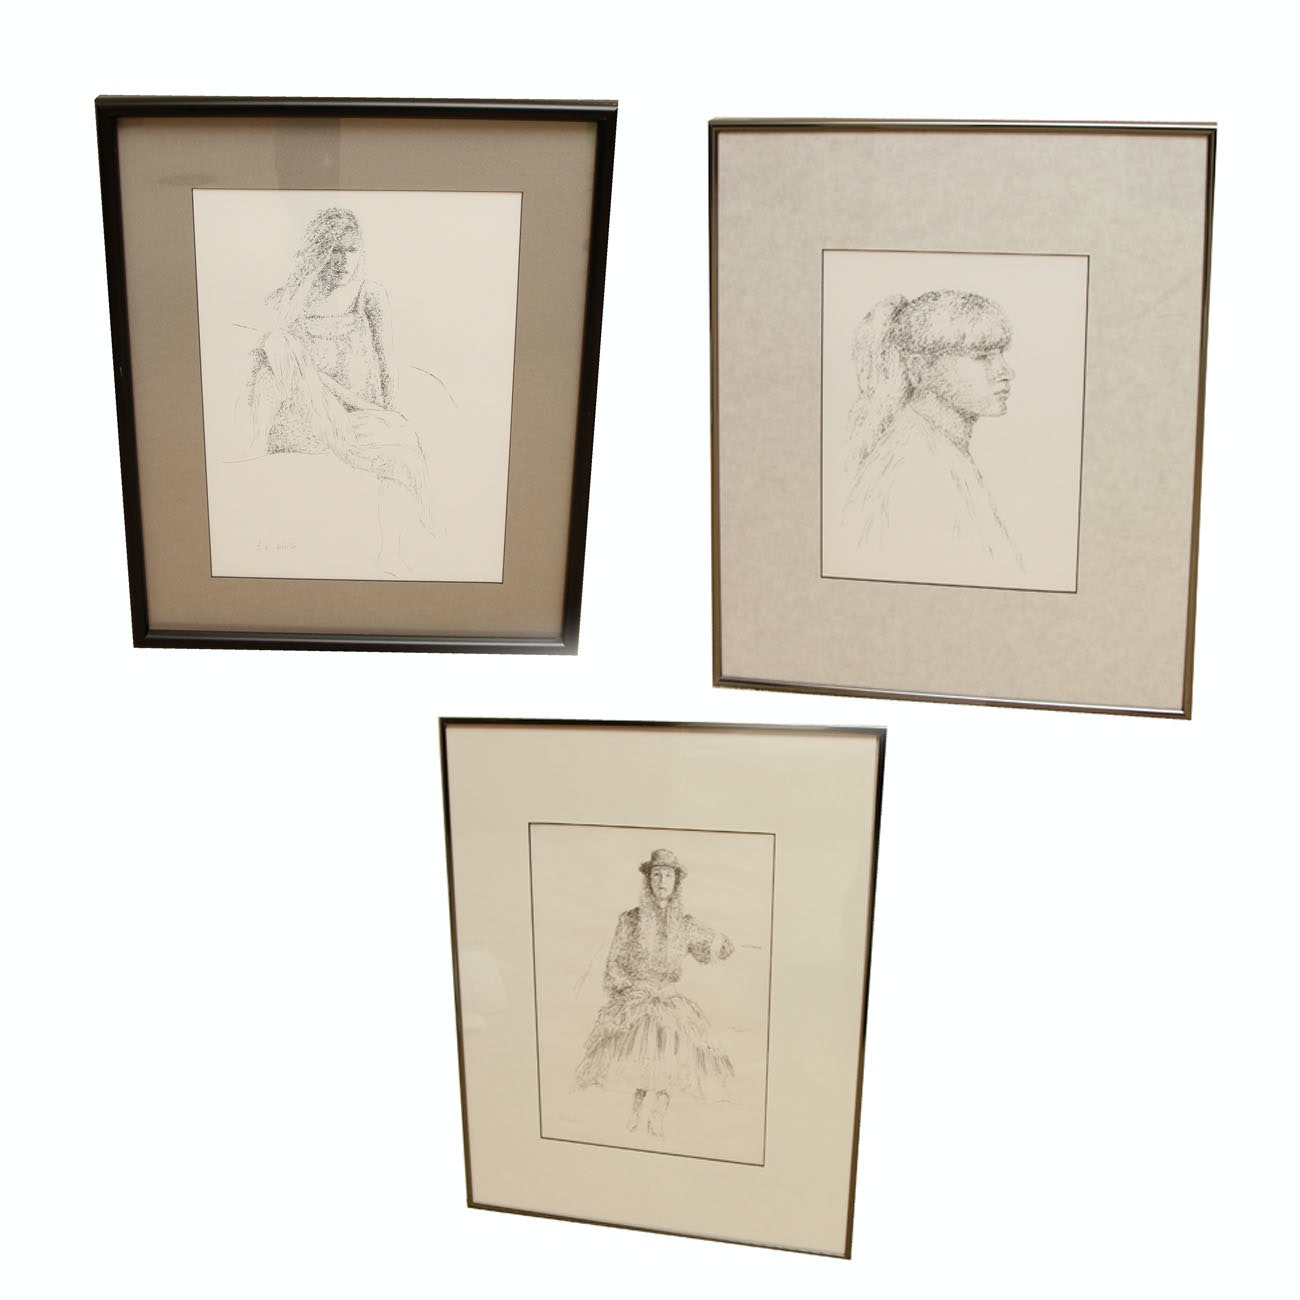 Framed Original Drawings of a Woman by A.W. White